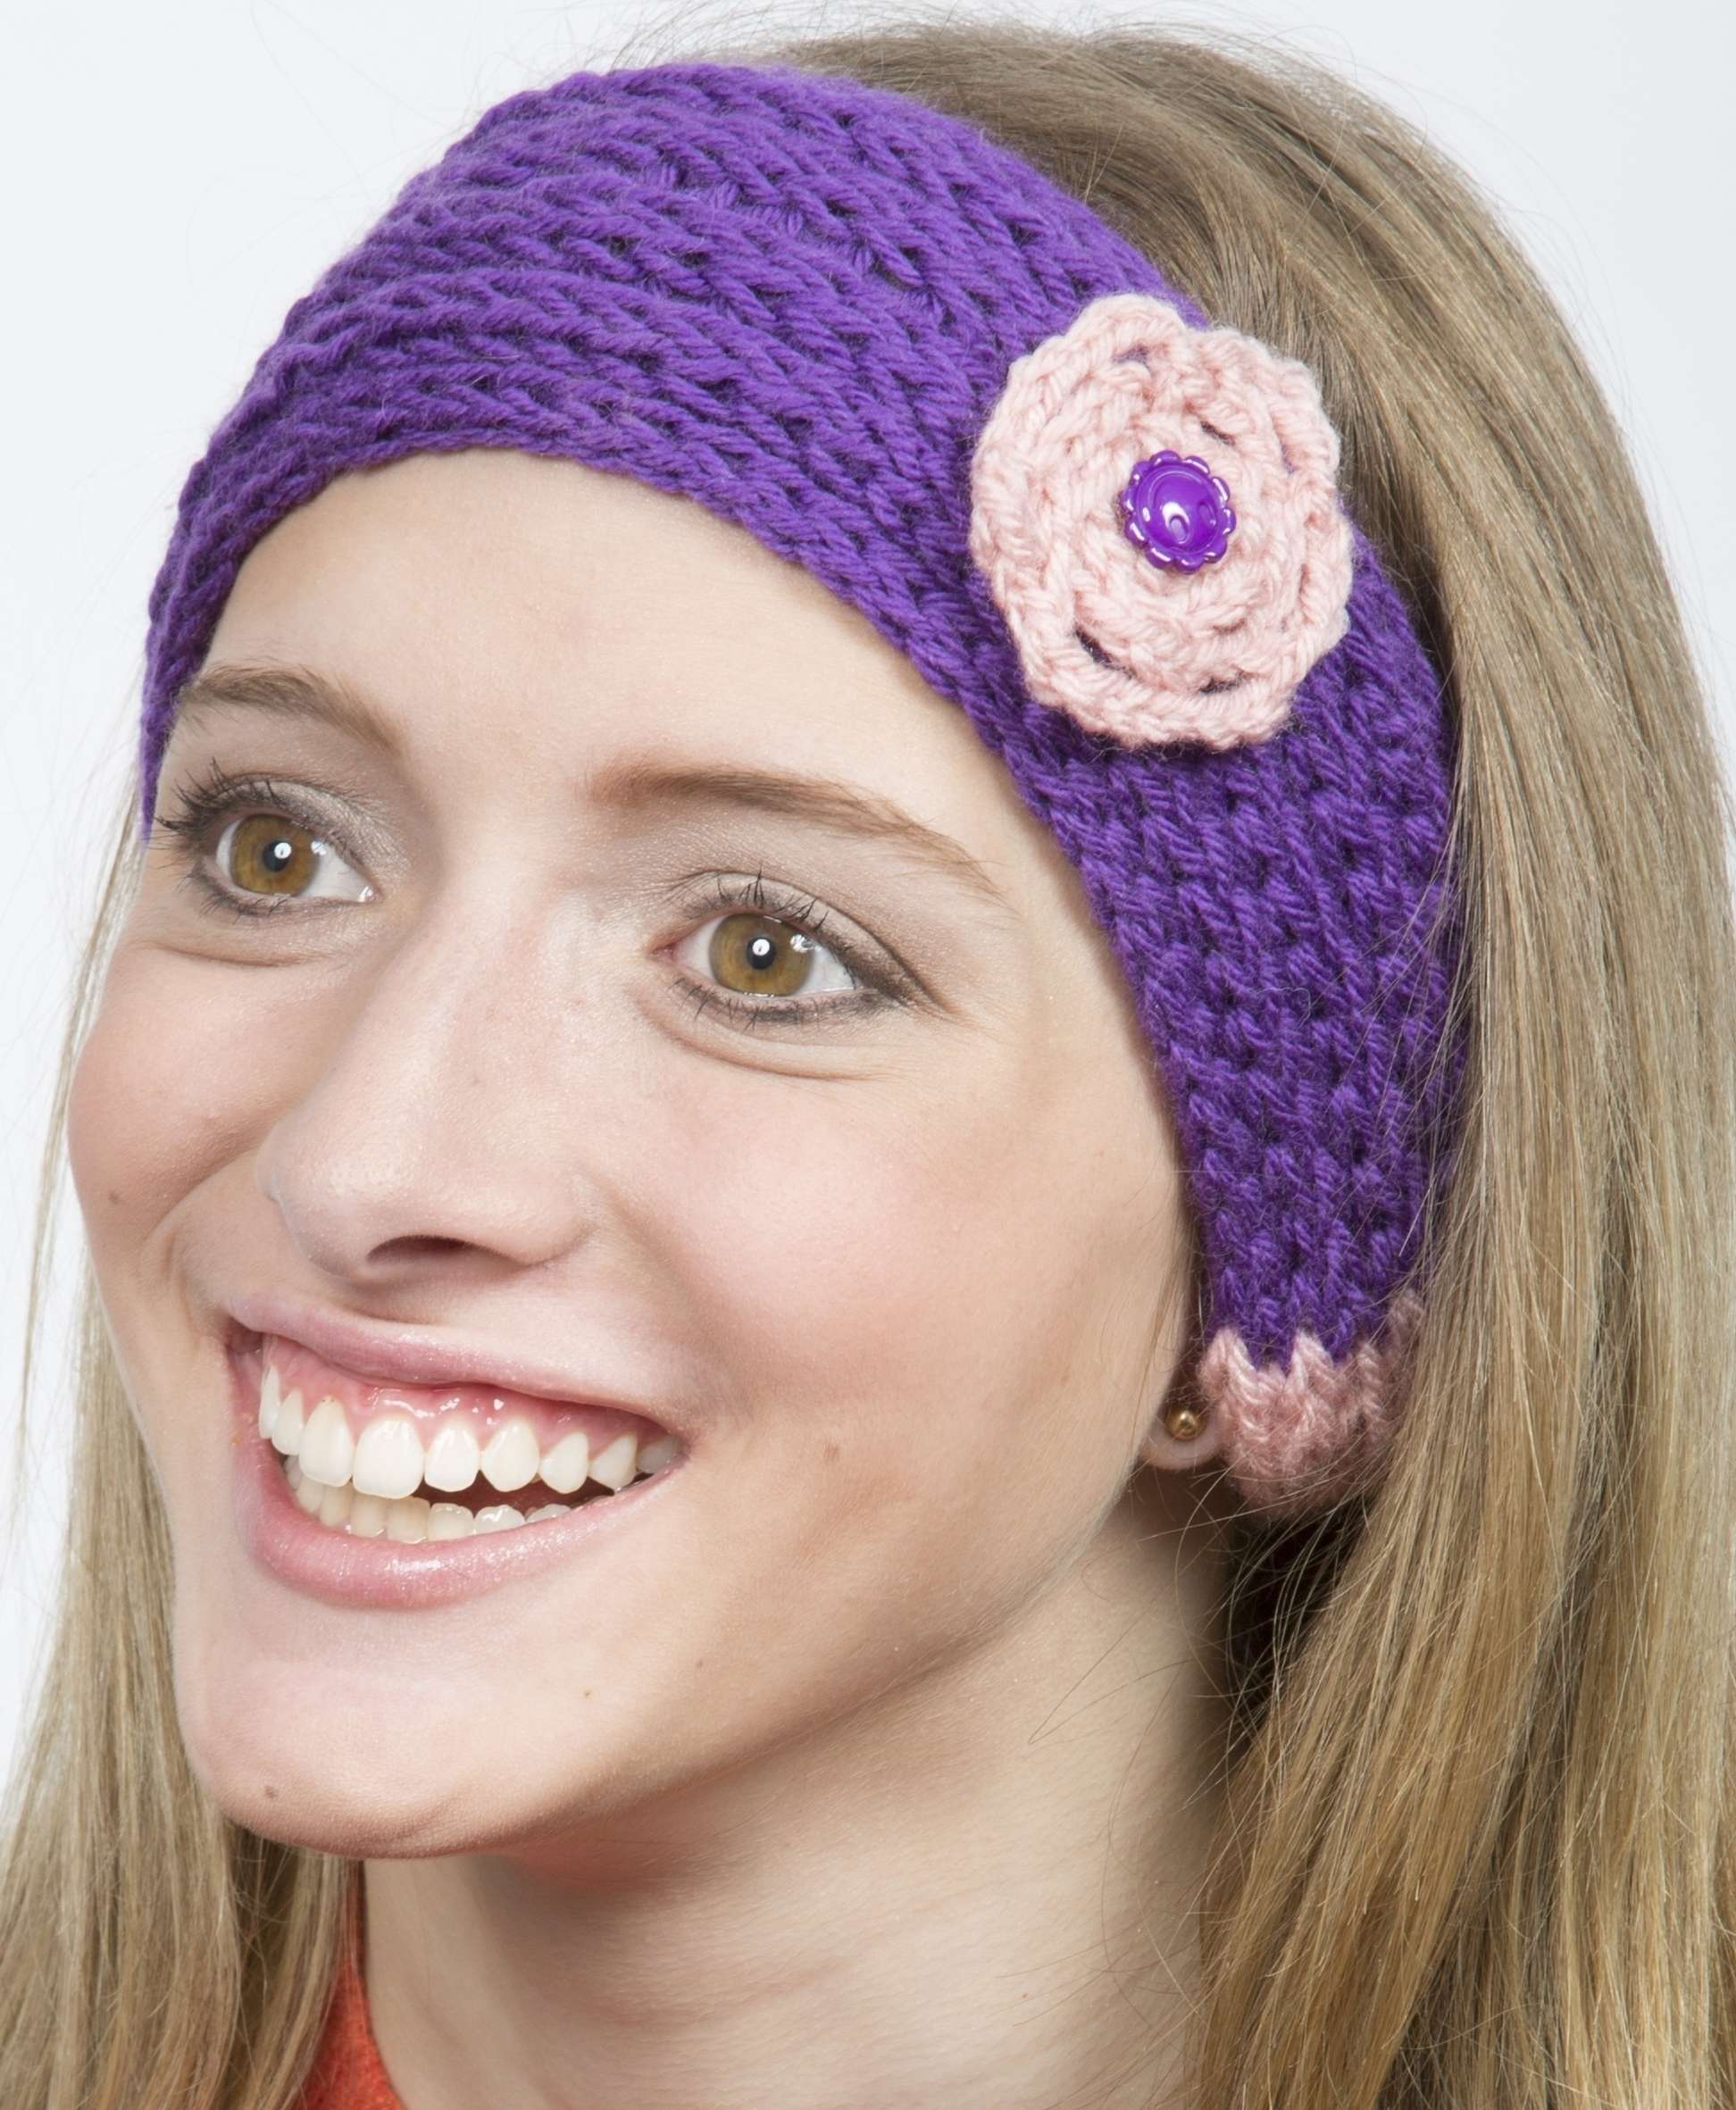 Loom Knitting Pattern Headband : Summer Rose Headband   Knitting Board Blog